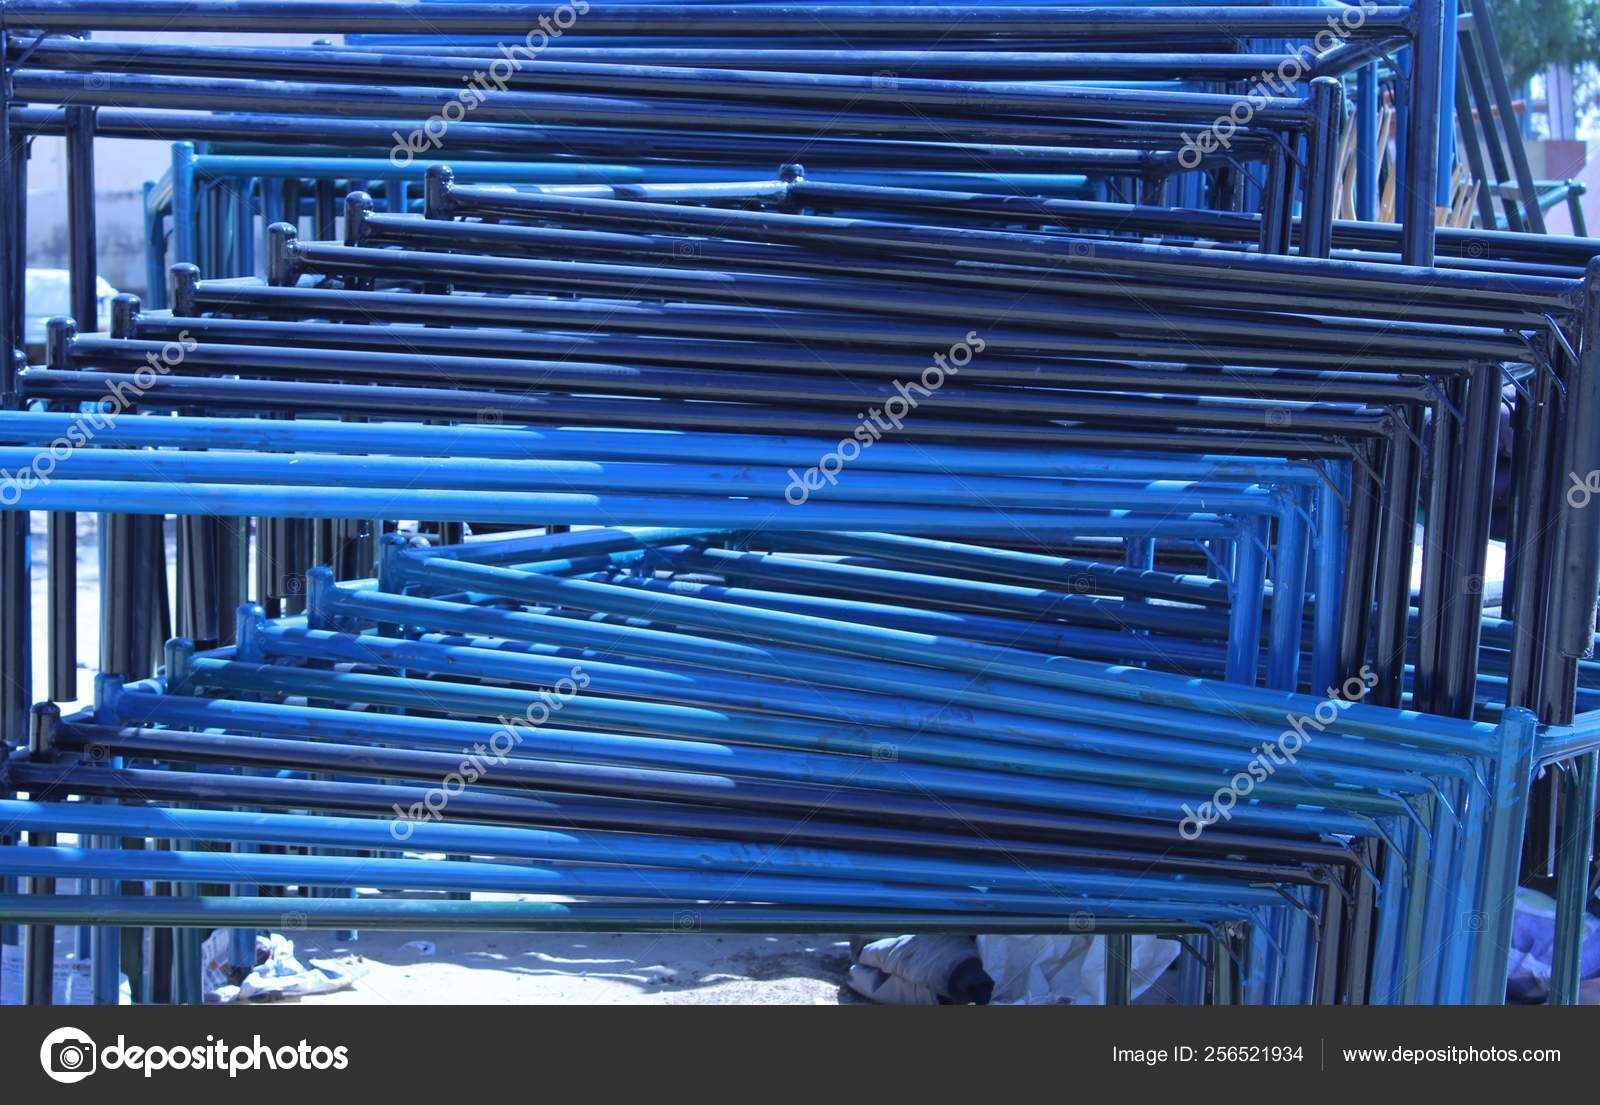 Blue Color Of Wrought Iron Bed Frame At The Market Stock Photo C Ommishra 256521934